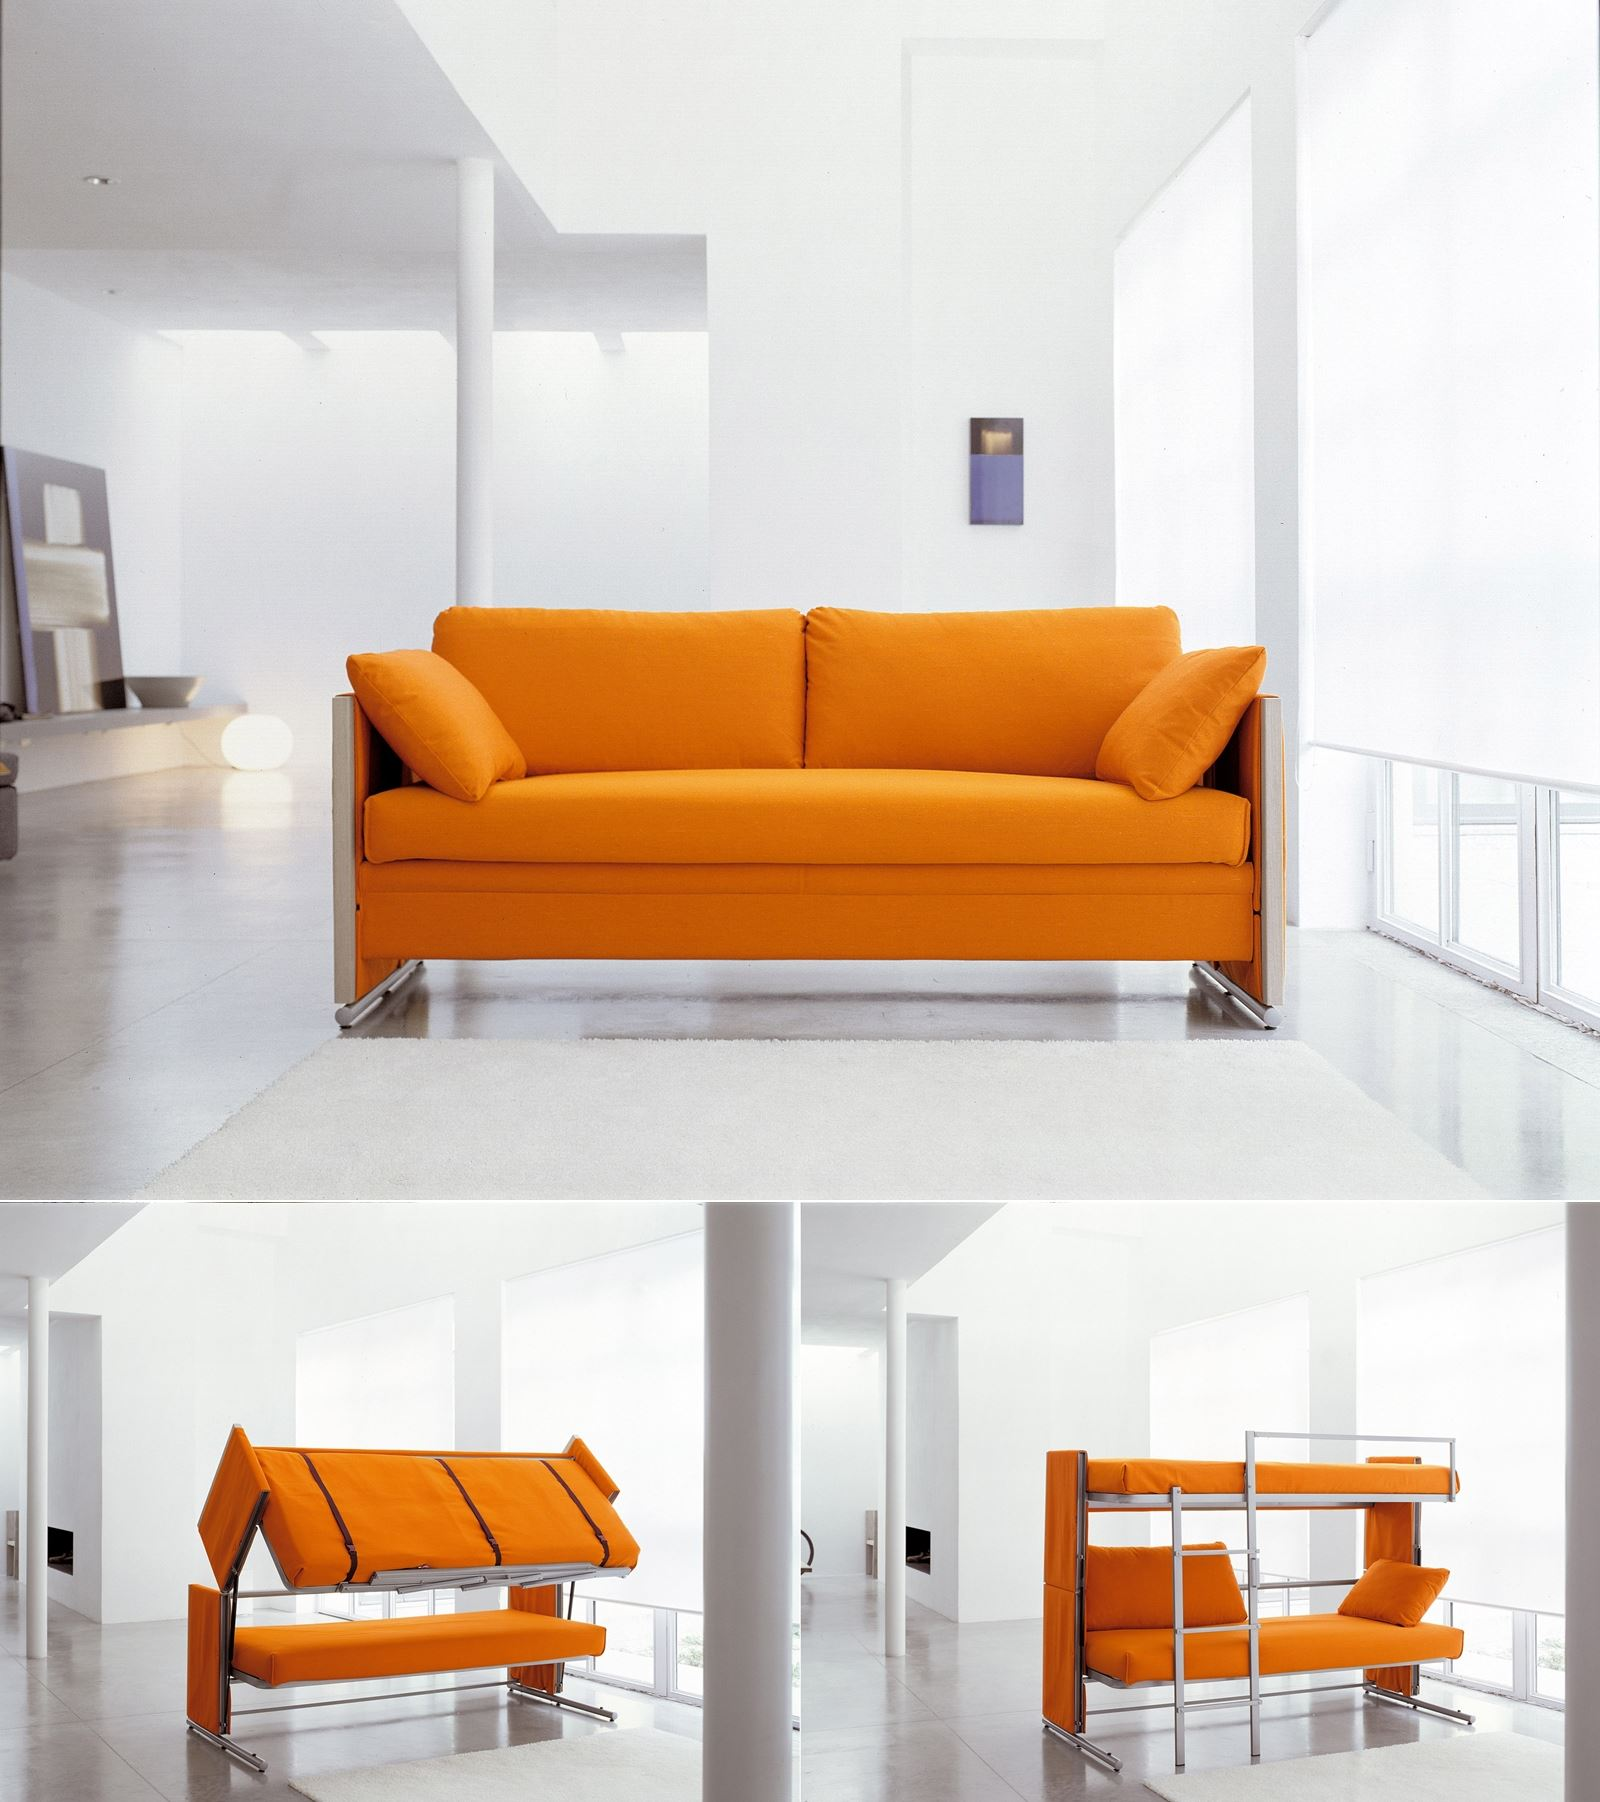 Magical Sofa Transforms Into A Bunk Bed In 10 Seconds Only